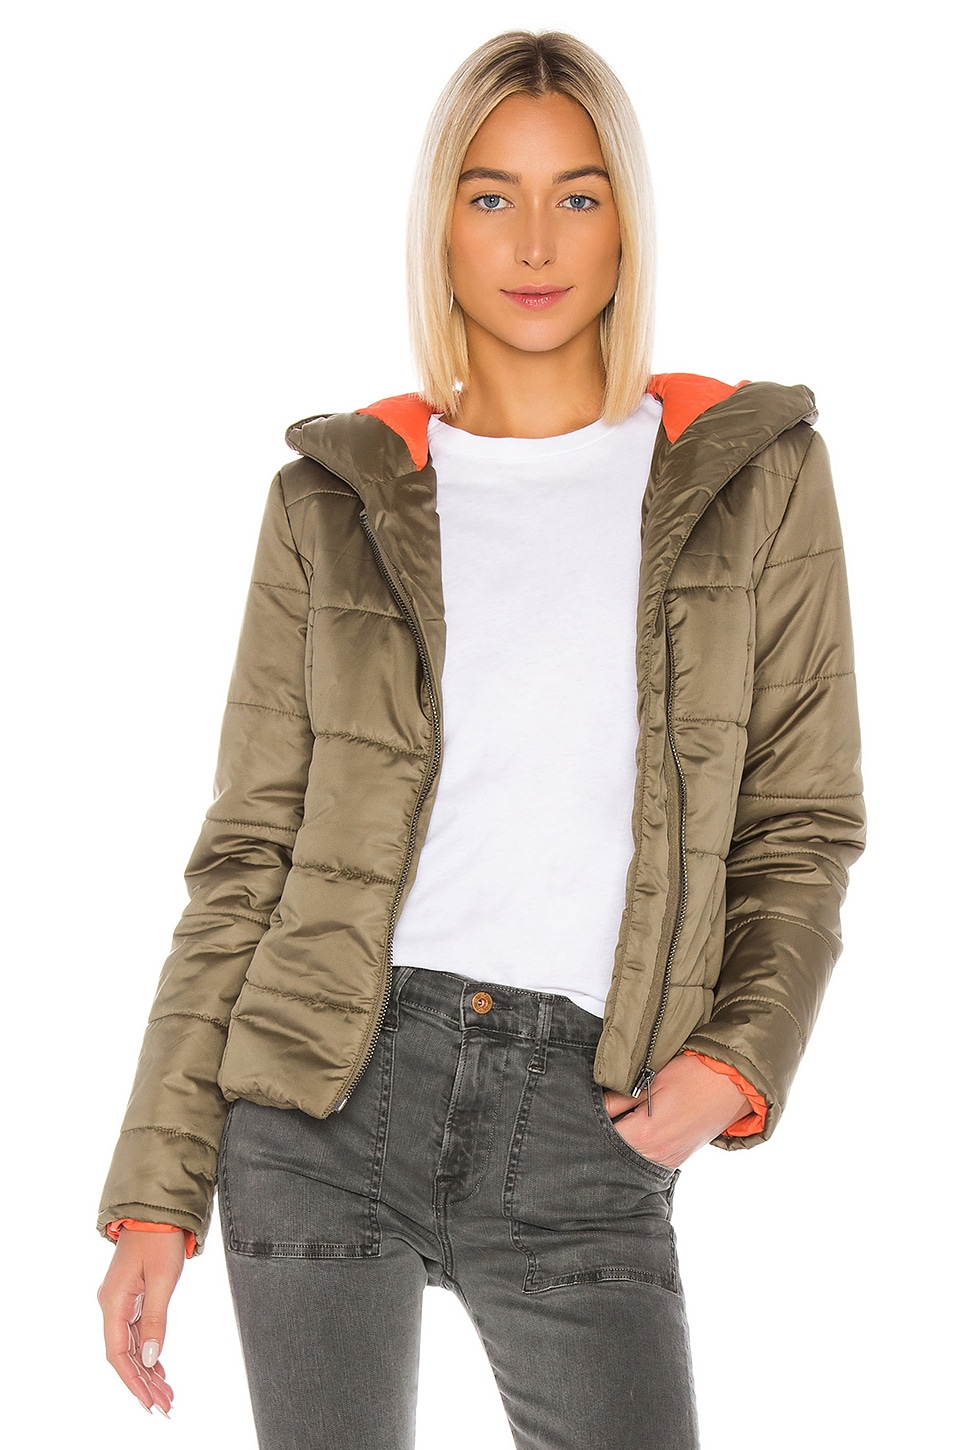 NSF Ollie Hooded Puffer Jacket in Army Green